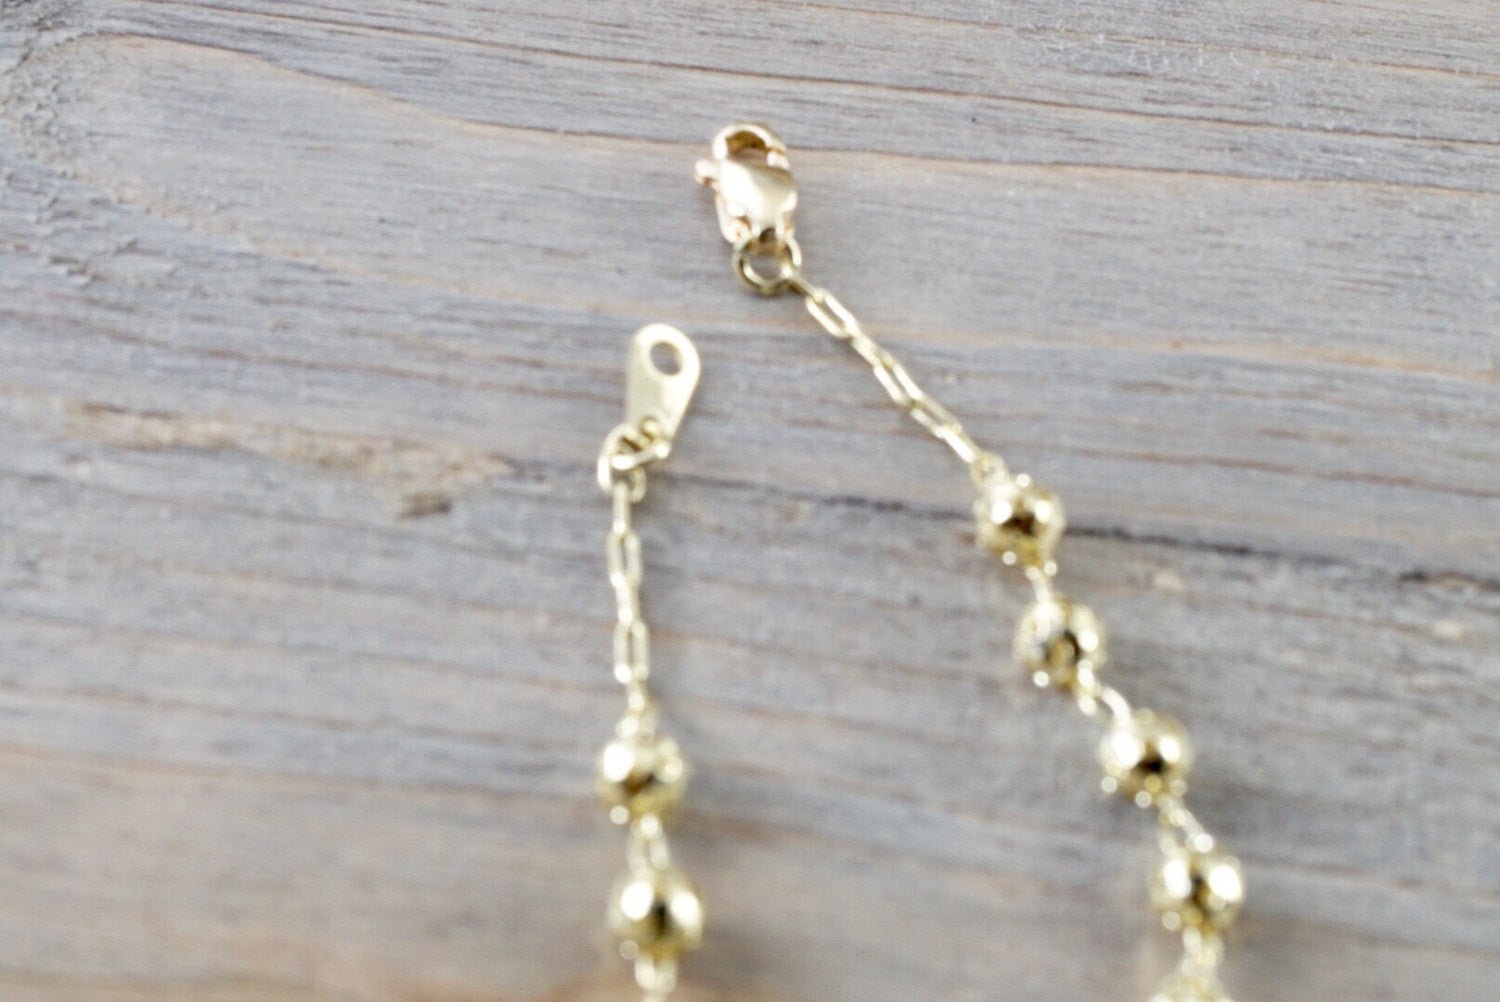 14k Yellow Gold Bead Ball Diamond Cut Charm Rosetta Cross Charm Bracelet Dainty Love Gift Fashion